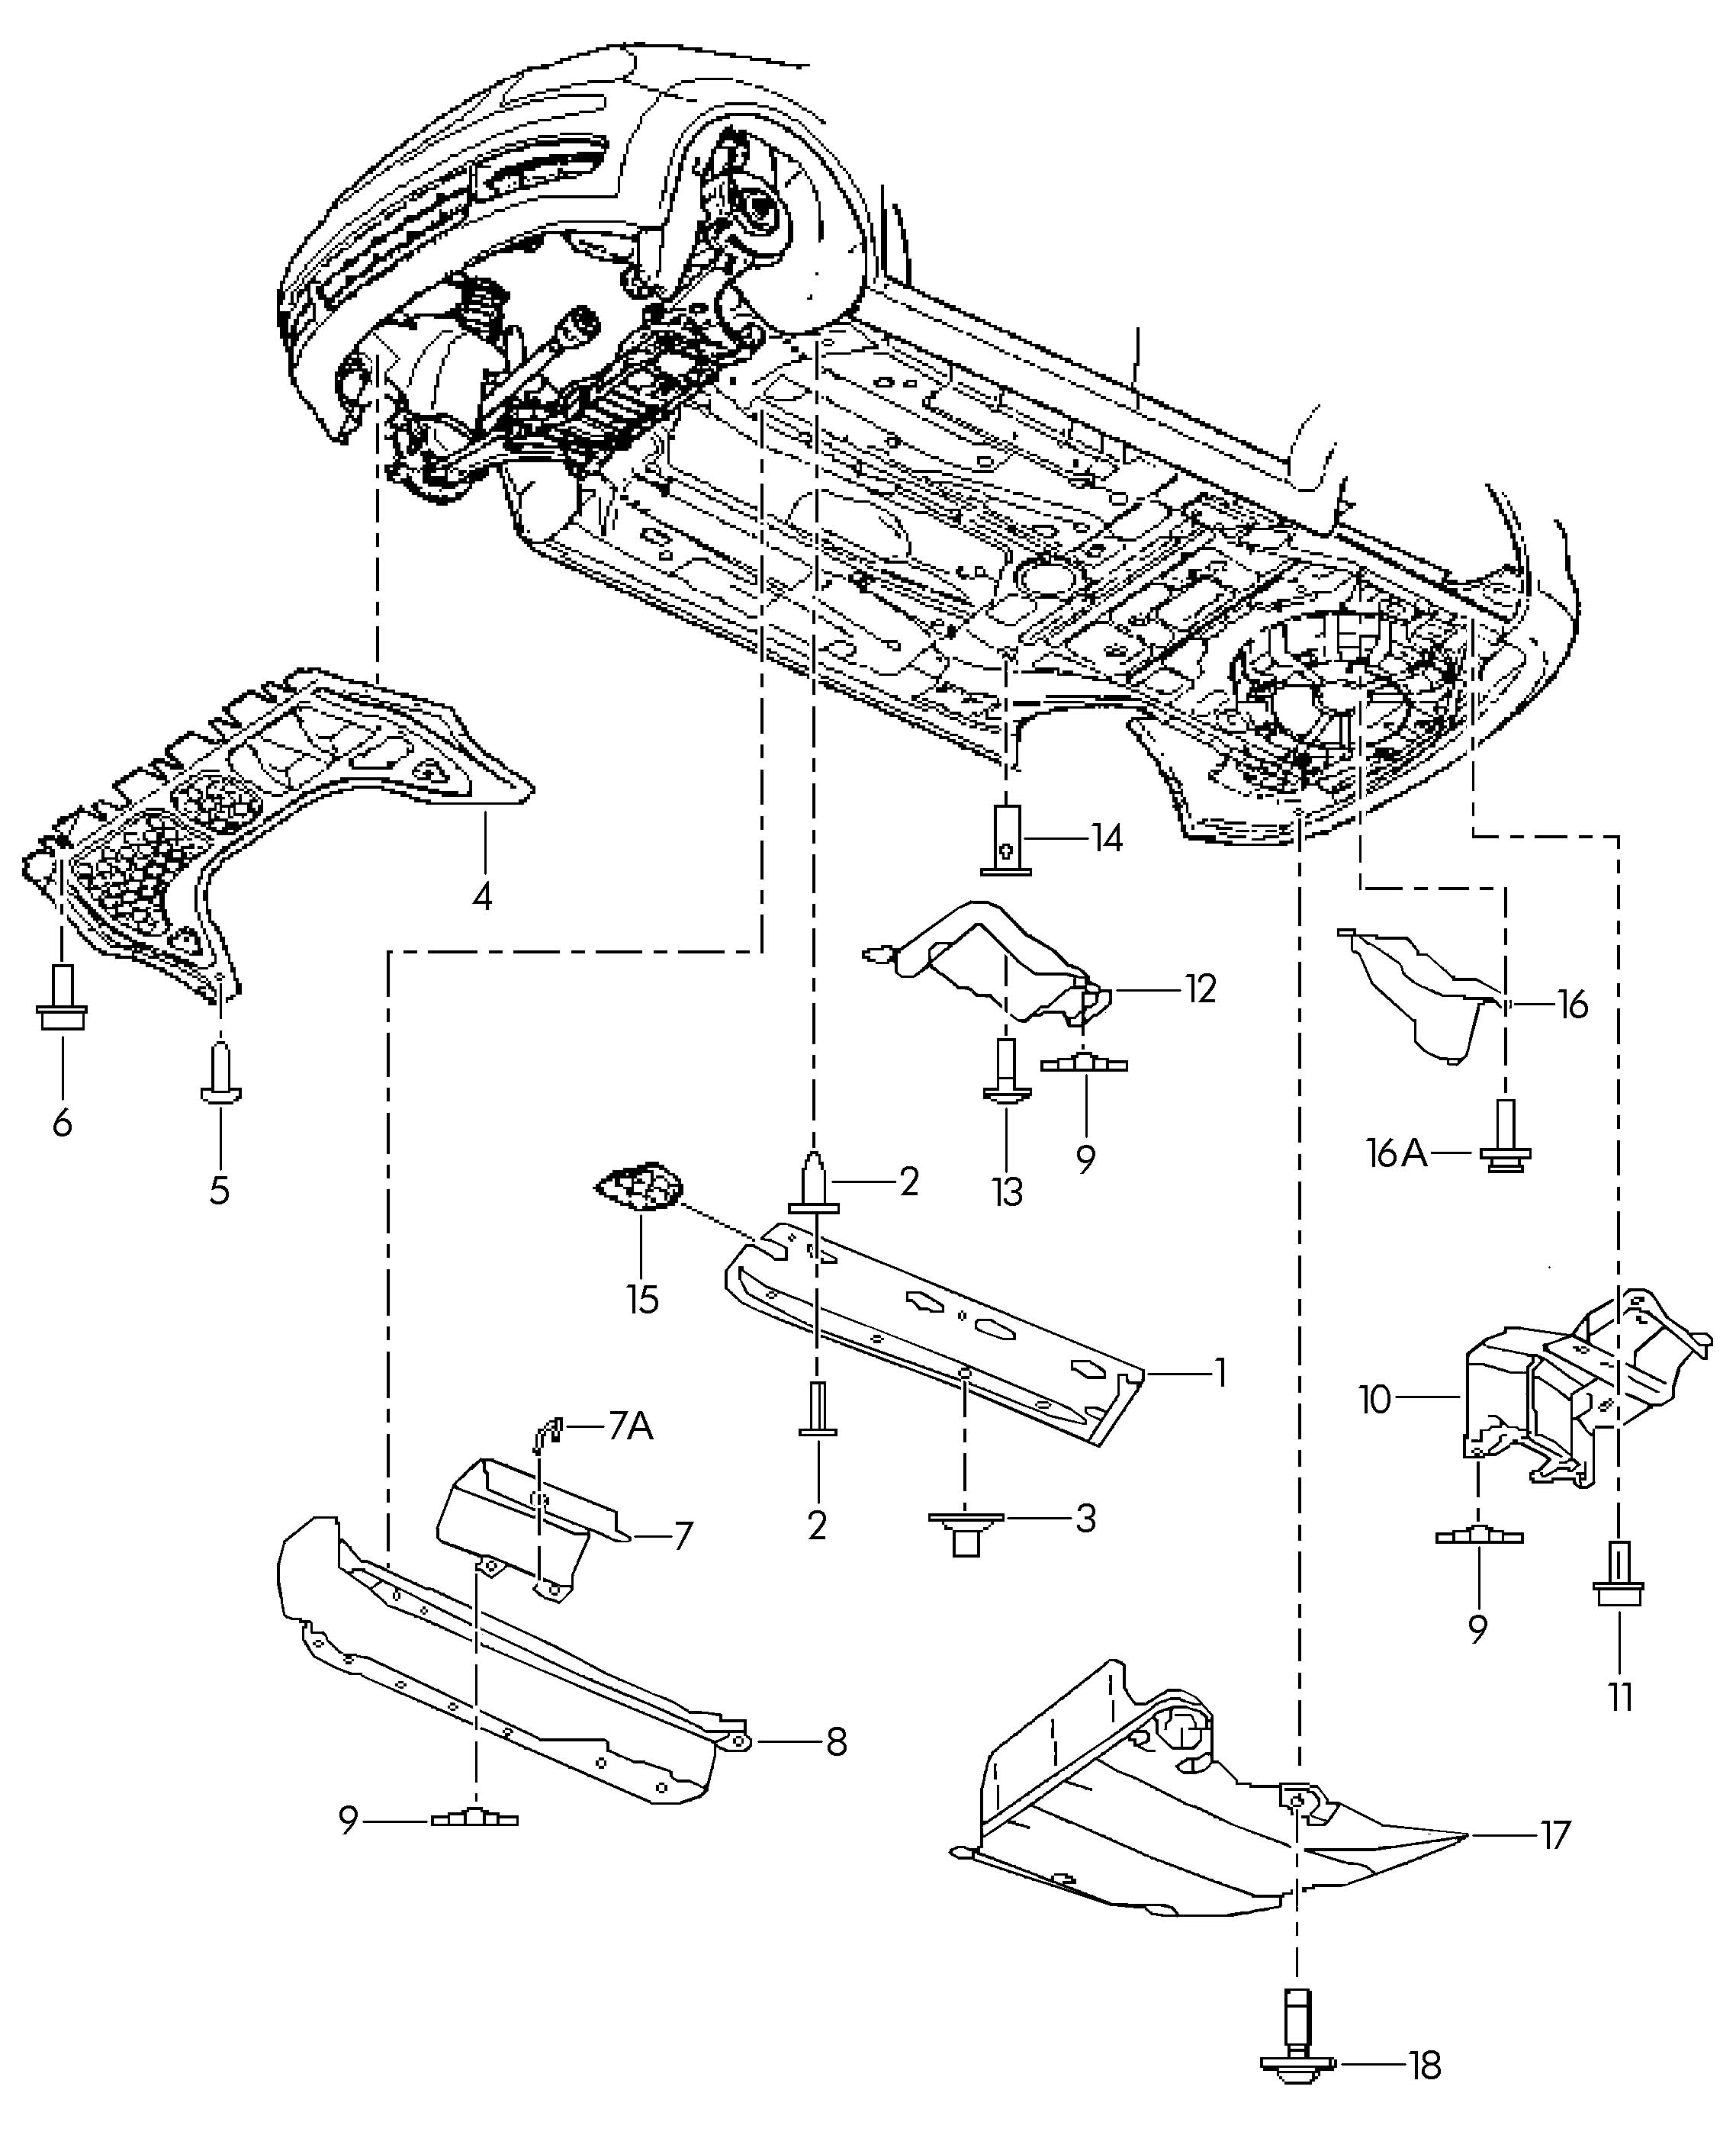 2015 Volkswagen Pat Parts Diagram, 2015, Free Engine Image